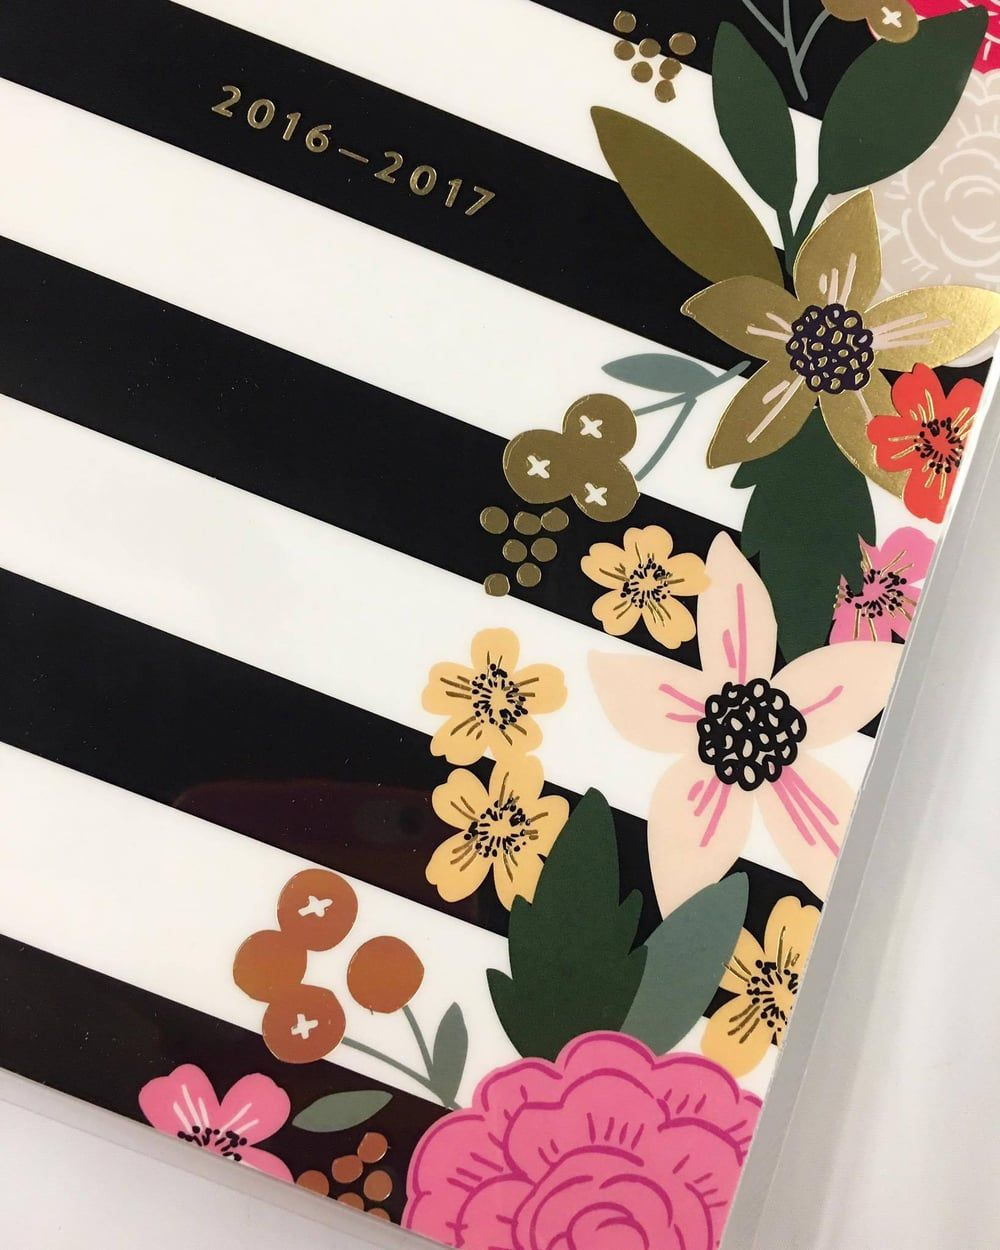 CHA 2016 sneak peaks of new products from The Happy Planner™ line | me & my BIG ideas